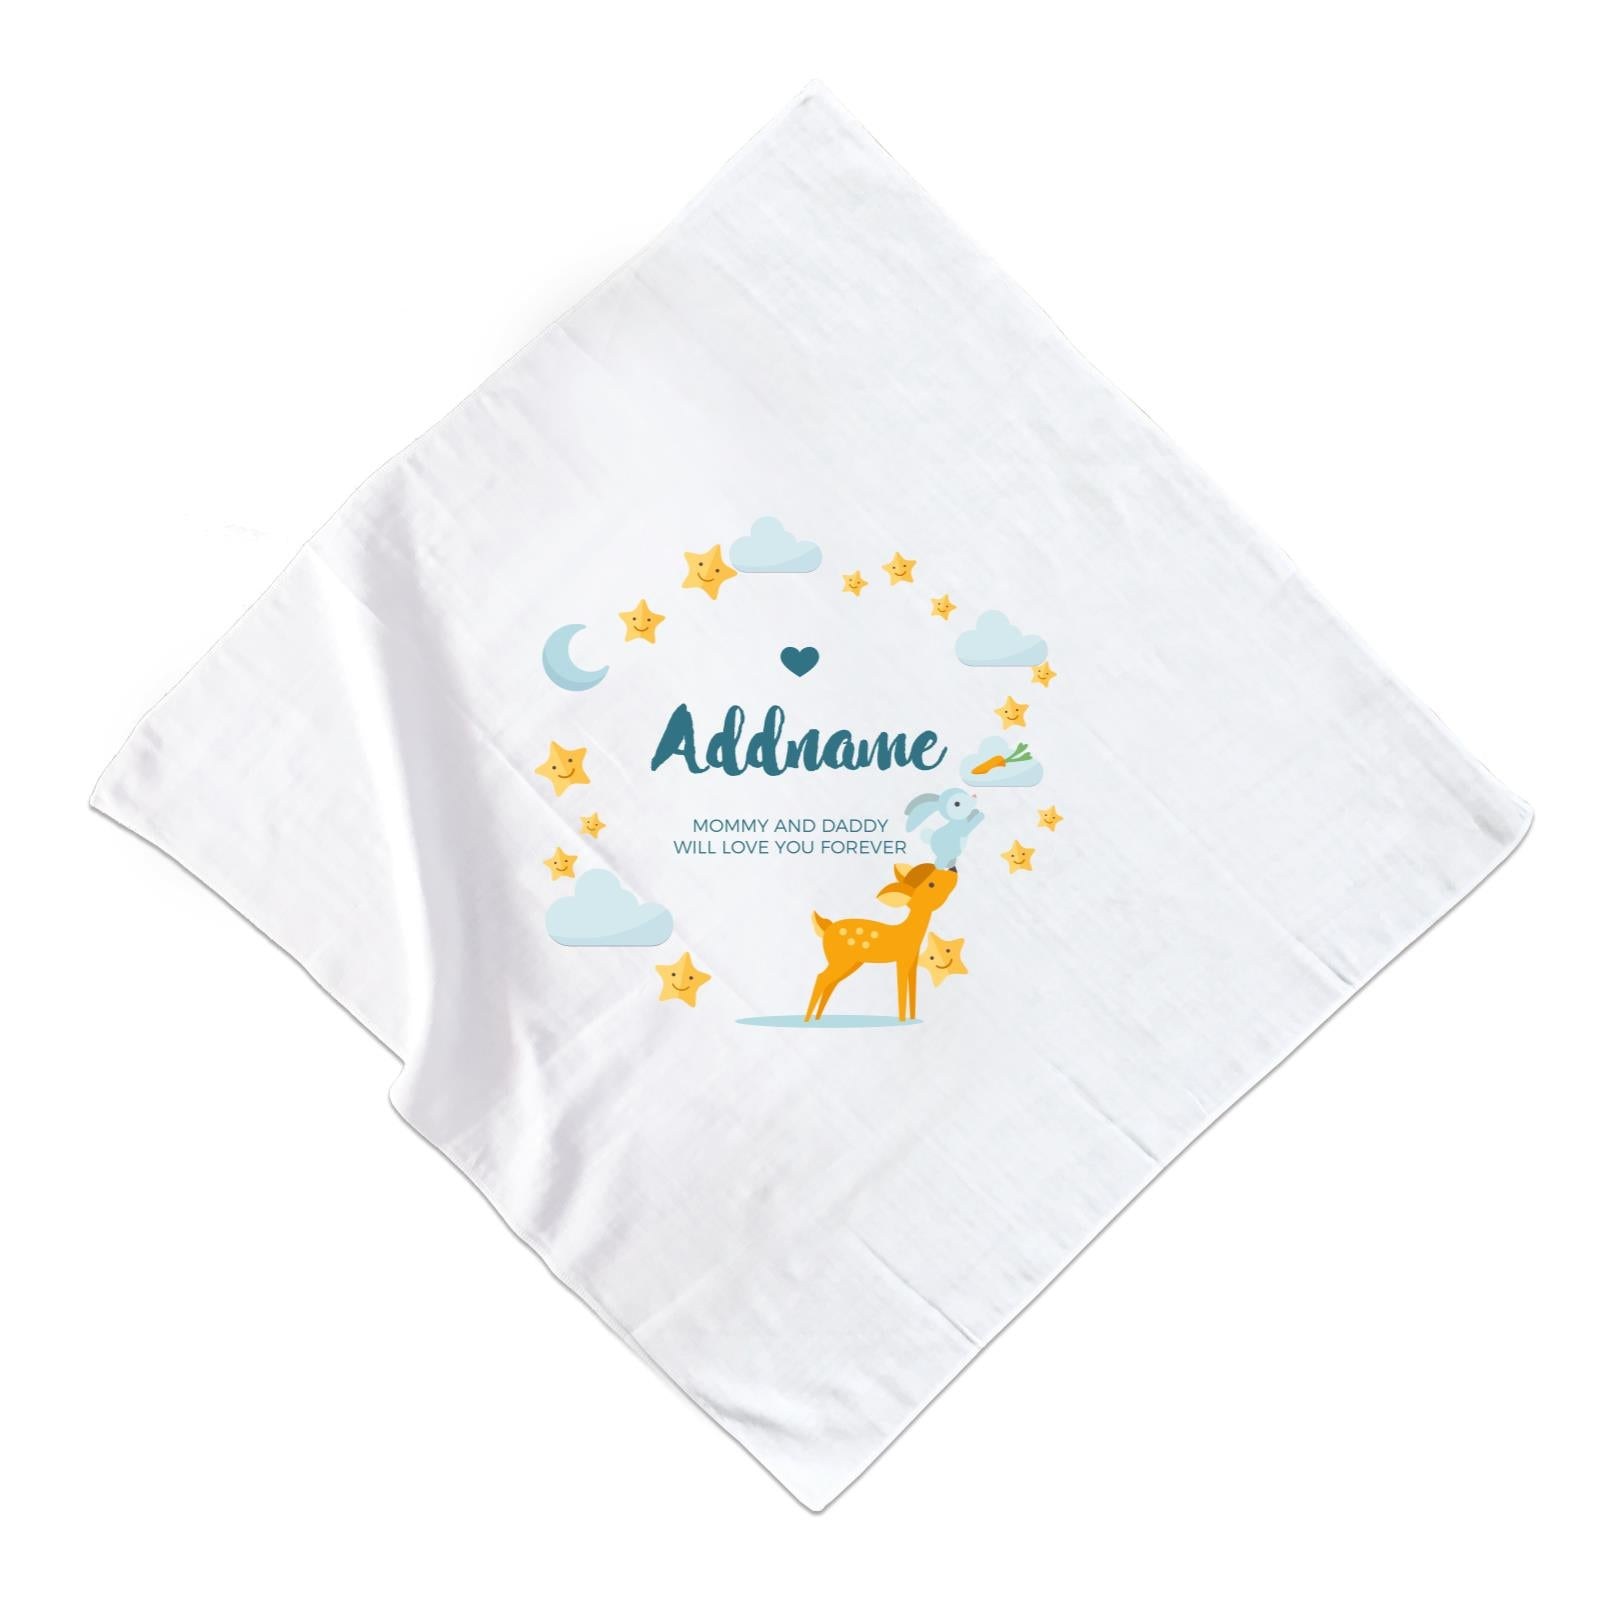 Cute Deer and Rabbit with Star and Moon Elements Personalizable with Name and Text Muslin Square